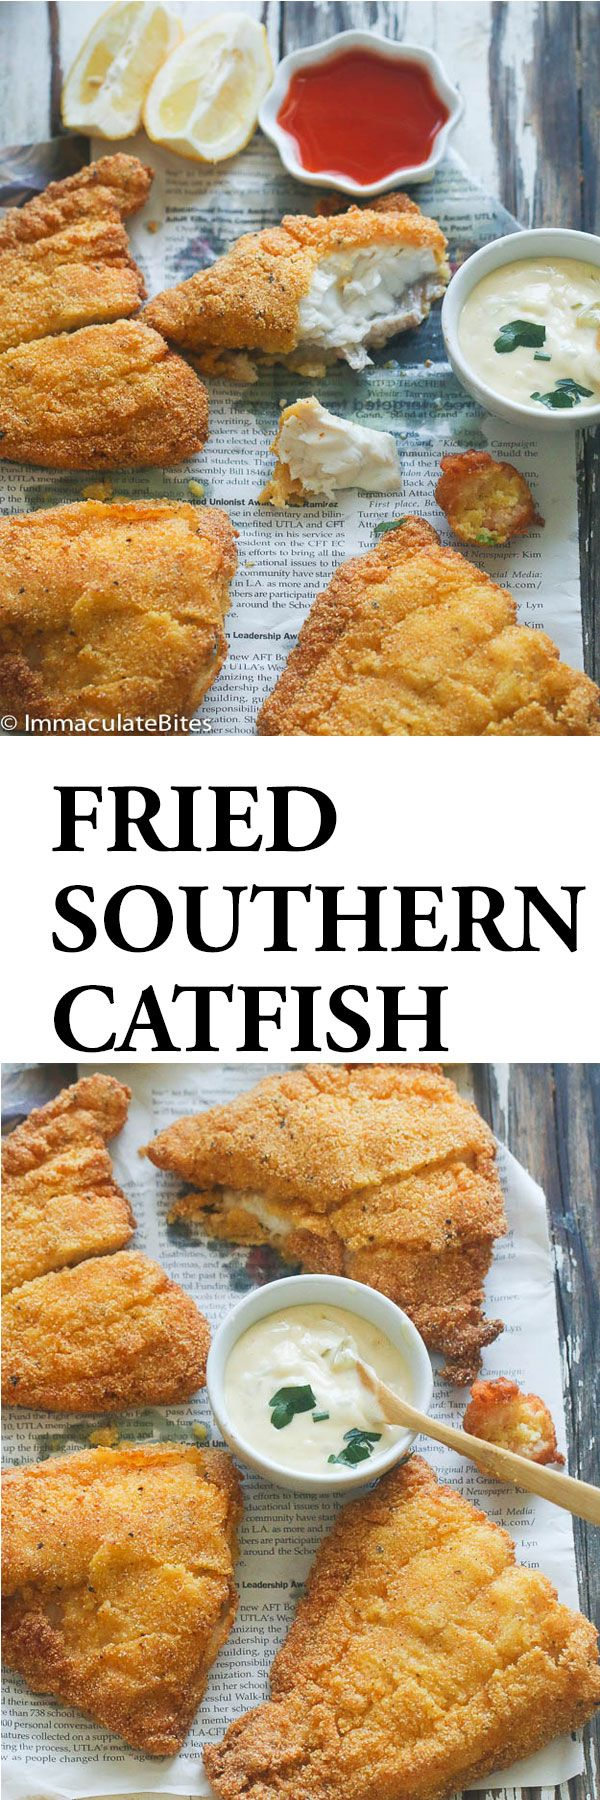 Southern Fried Cat Fish- Classic Southern Fried Catfish dipped in buttermilk and breaded in spicy seasoned cornmeal and fried to perfection. Fried cat fish conjures thoughts of finger-licking goodness and crispy crunch in every bite. When I bought these fish fillets at the market my intention was to bake them with garlic and salt.But I would not stop thinking about …